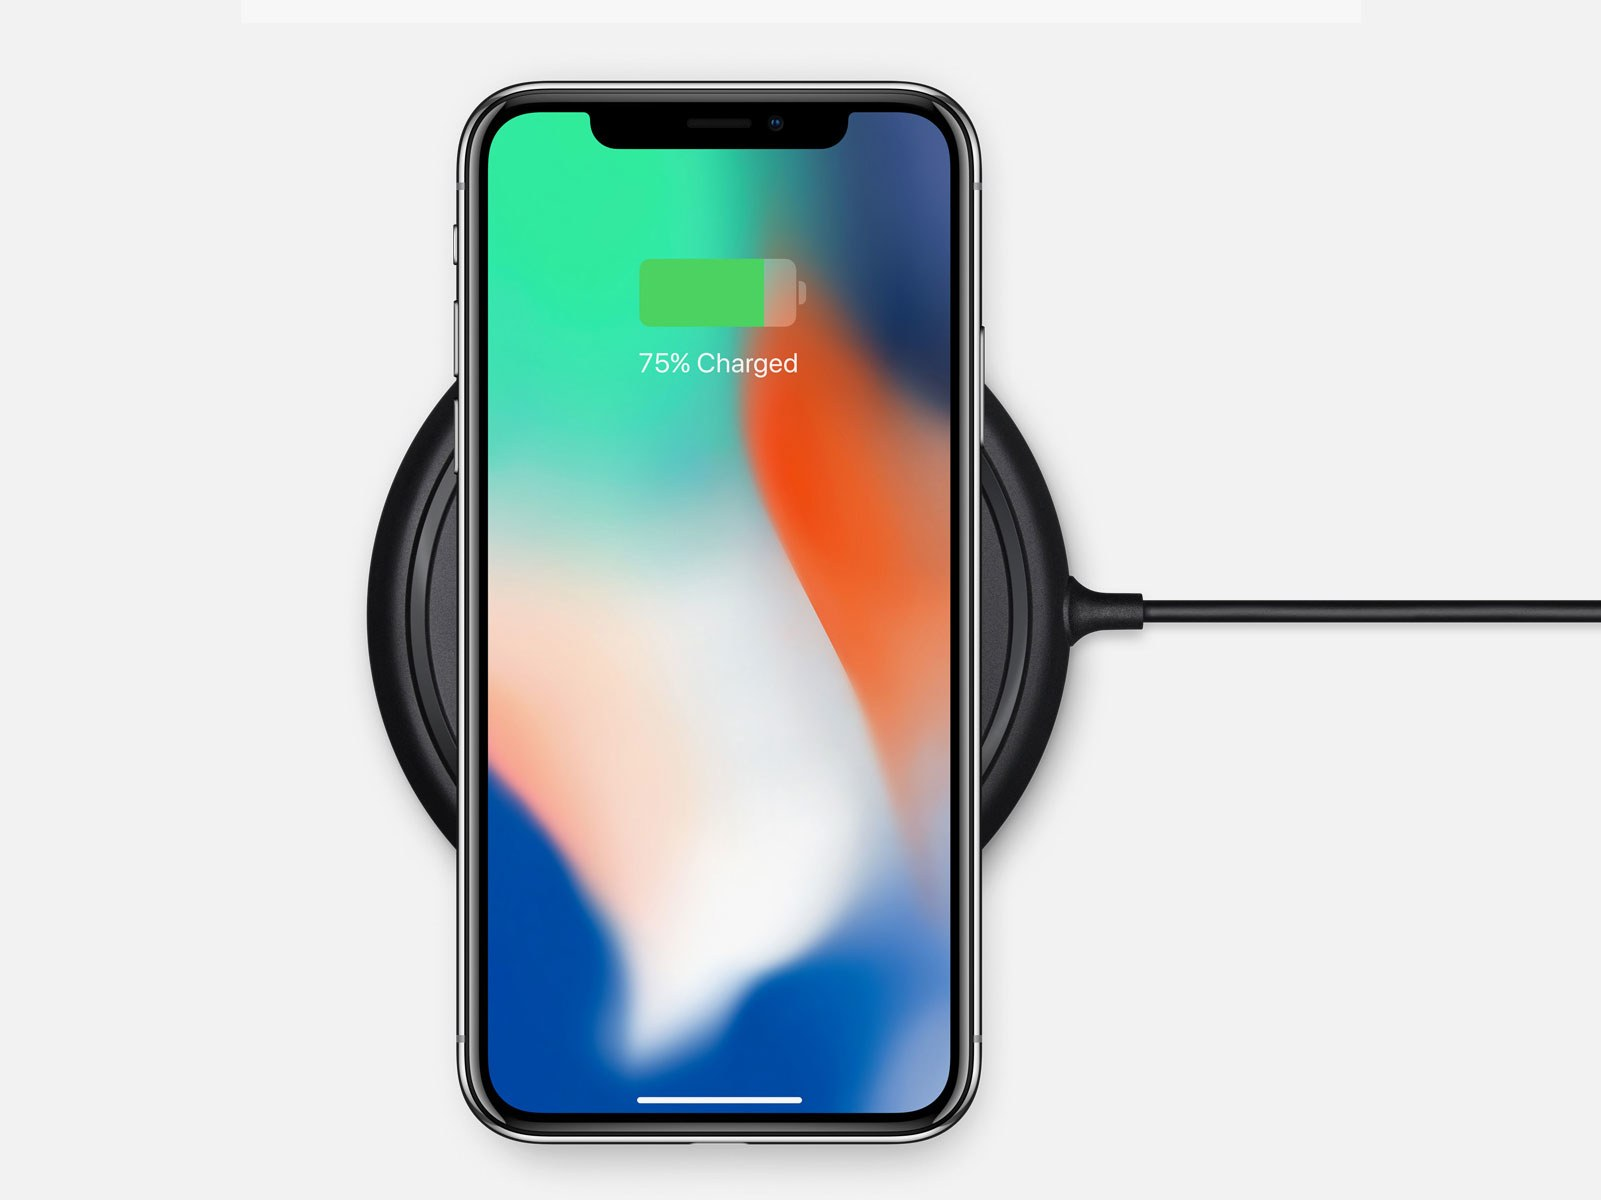 The iPhone's Wireless Charging Is Its Most Impactful New Feature | WIRED